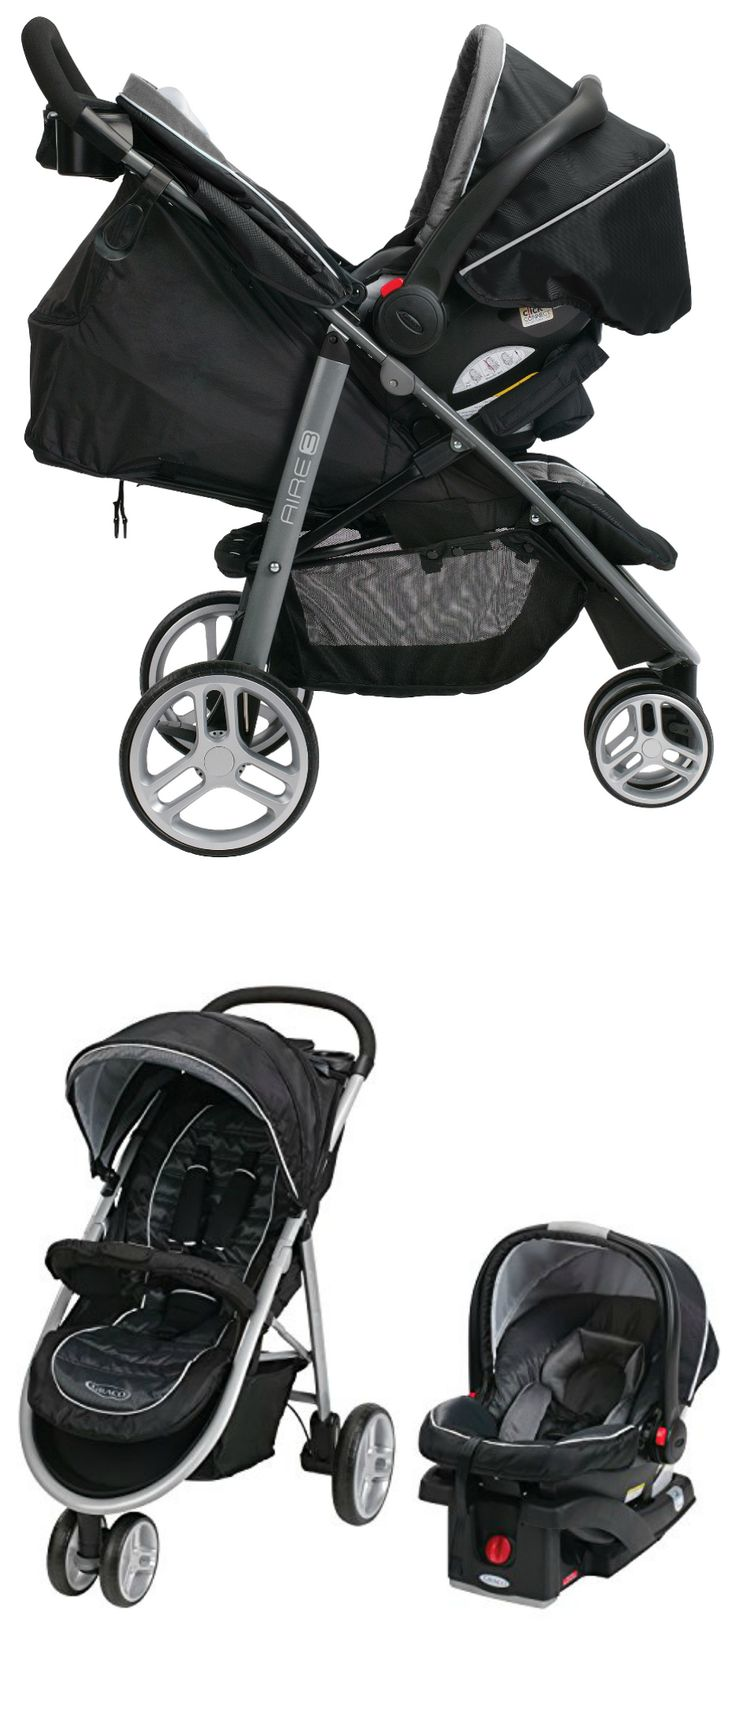 On our list of the top 10  best travel systems is the Graco Aire3 Click Connect. Why We Love It: Graco's Aire3 Click Connect Travel System comes with a stroller, infant car seat, and base. The stroller is sleek and lightweight weighing less than 22 pounds and has 3 wheels. It folds with one hand and locks automatically plus... Continue Reading